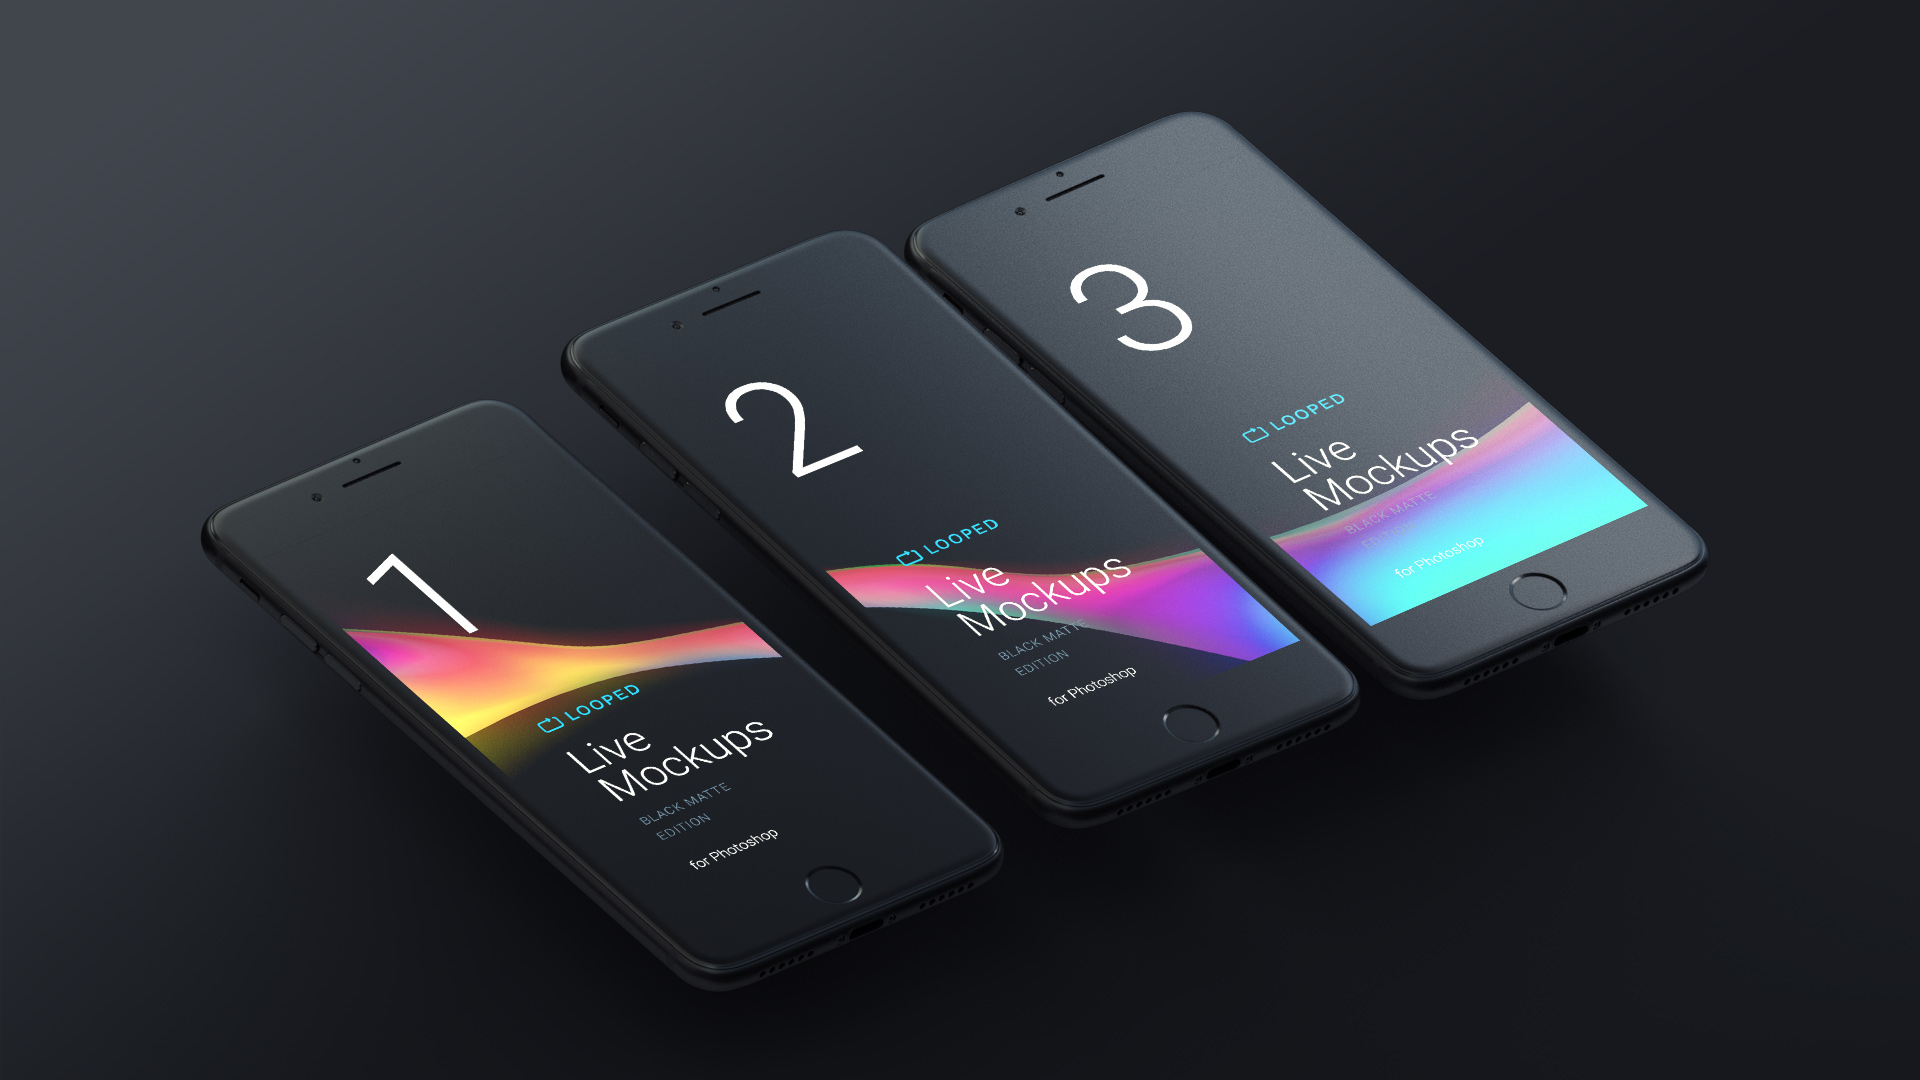 Apple Iphone X Wallpaper From Commercial 8 Black Matte Apple Devices Mockups Freebies For